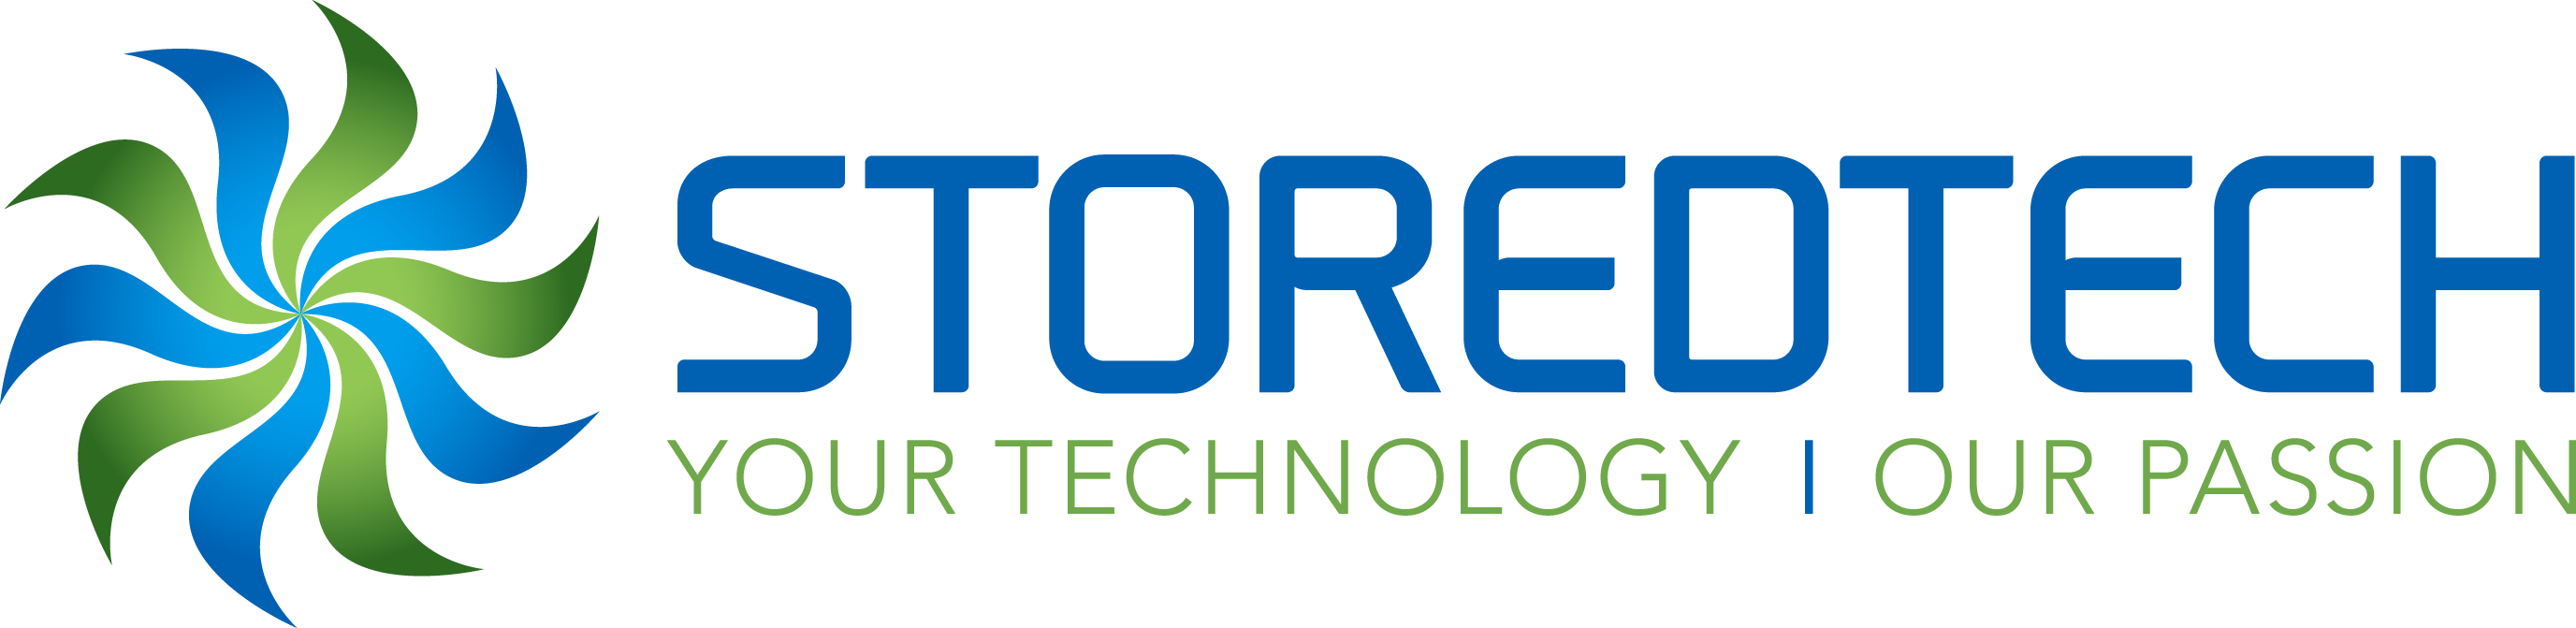 STOREDTECH - Your Technology, Our Passion logo